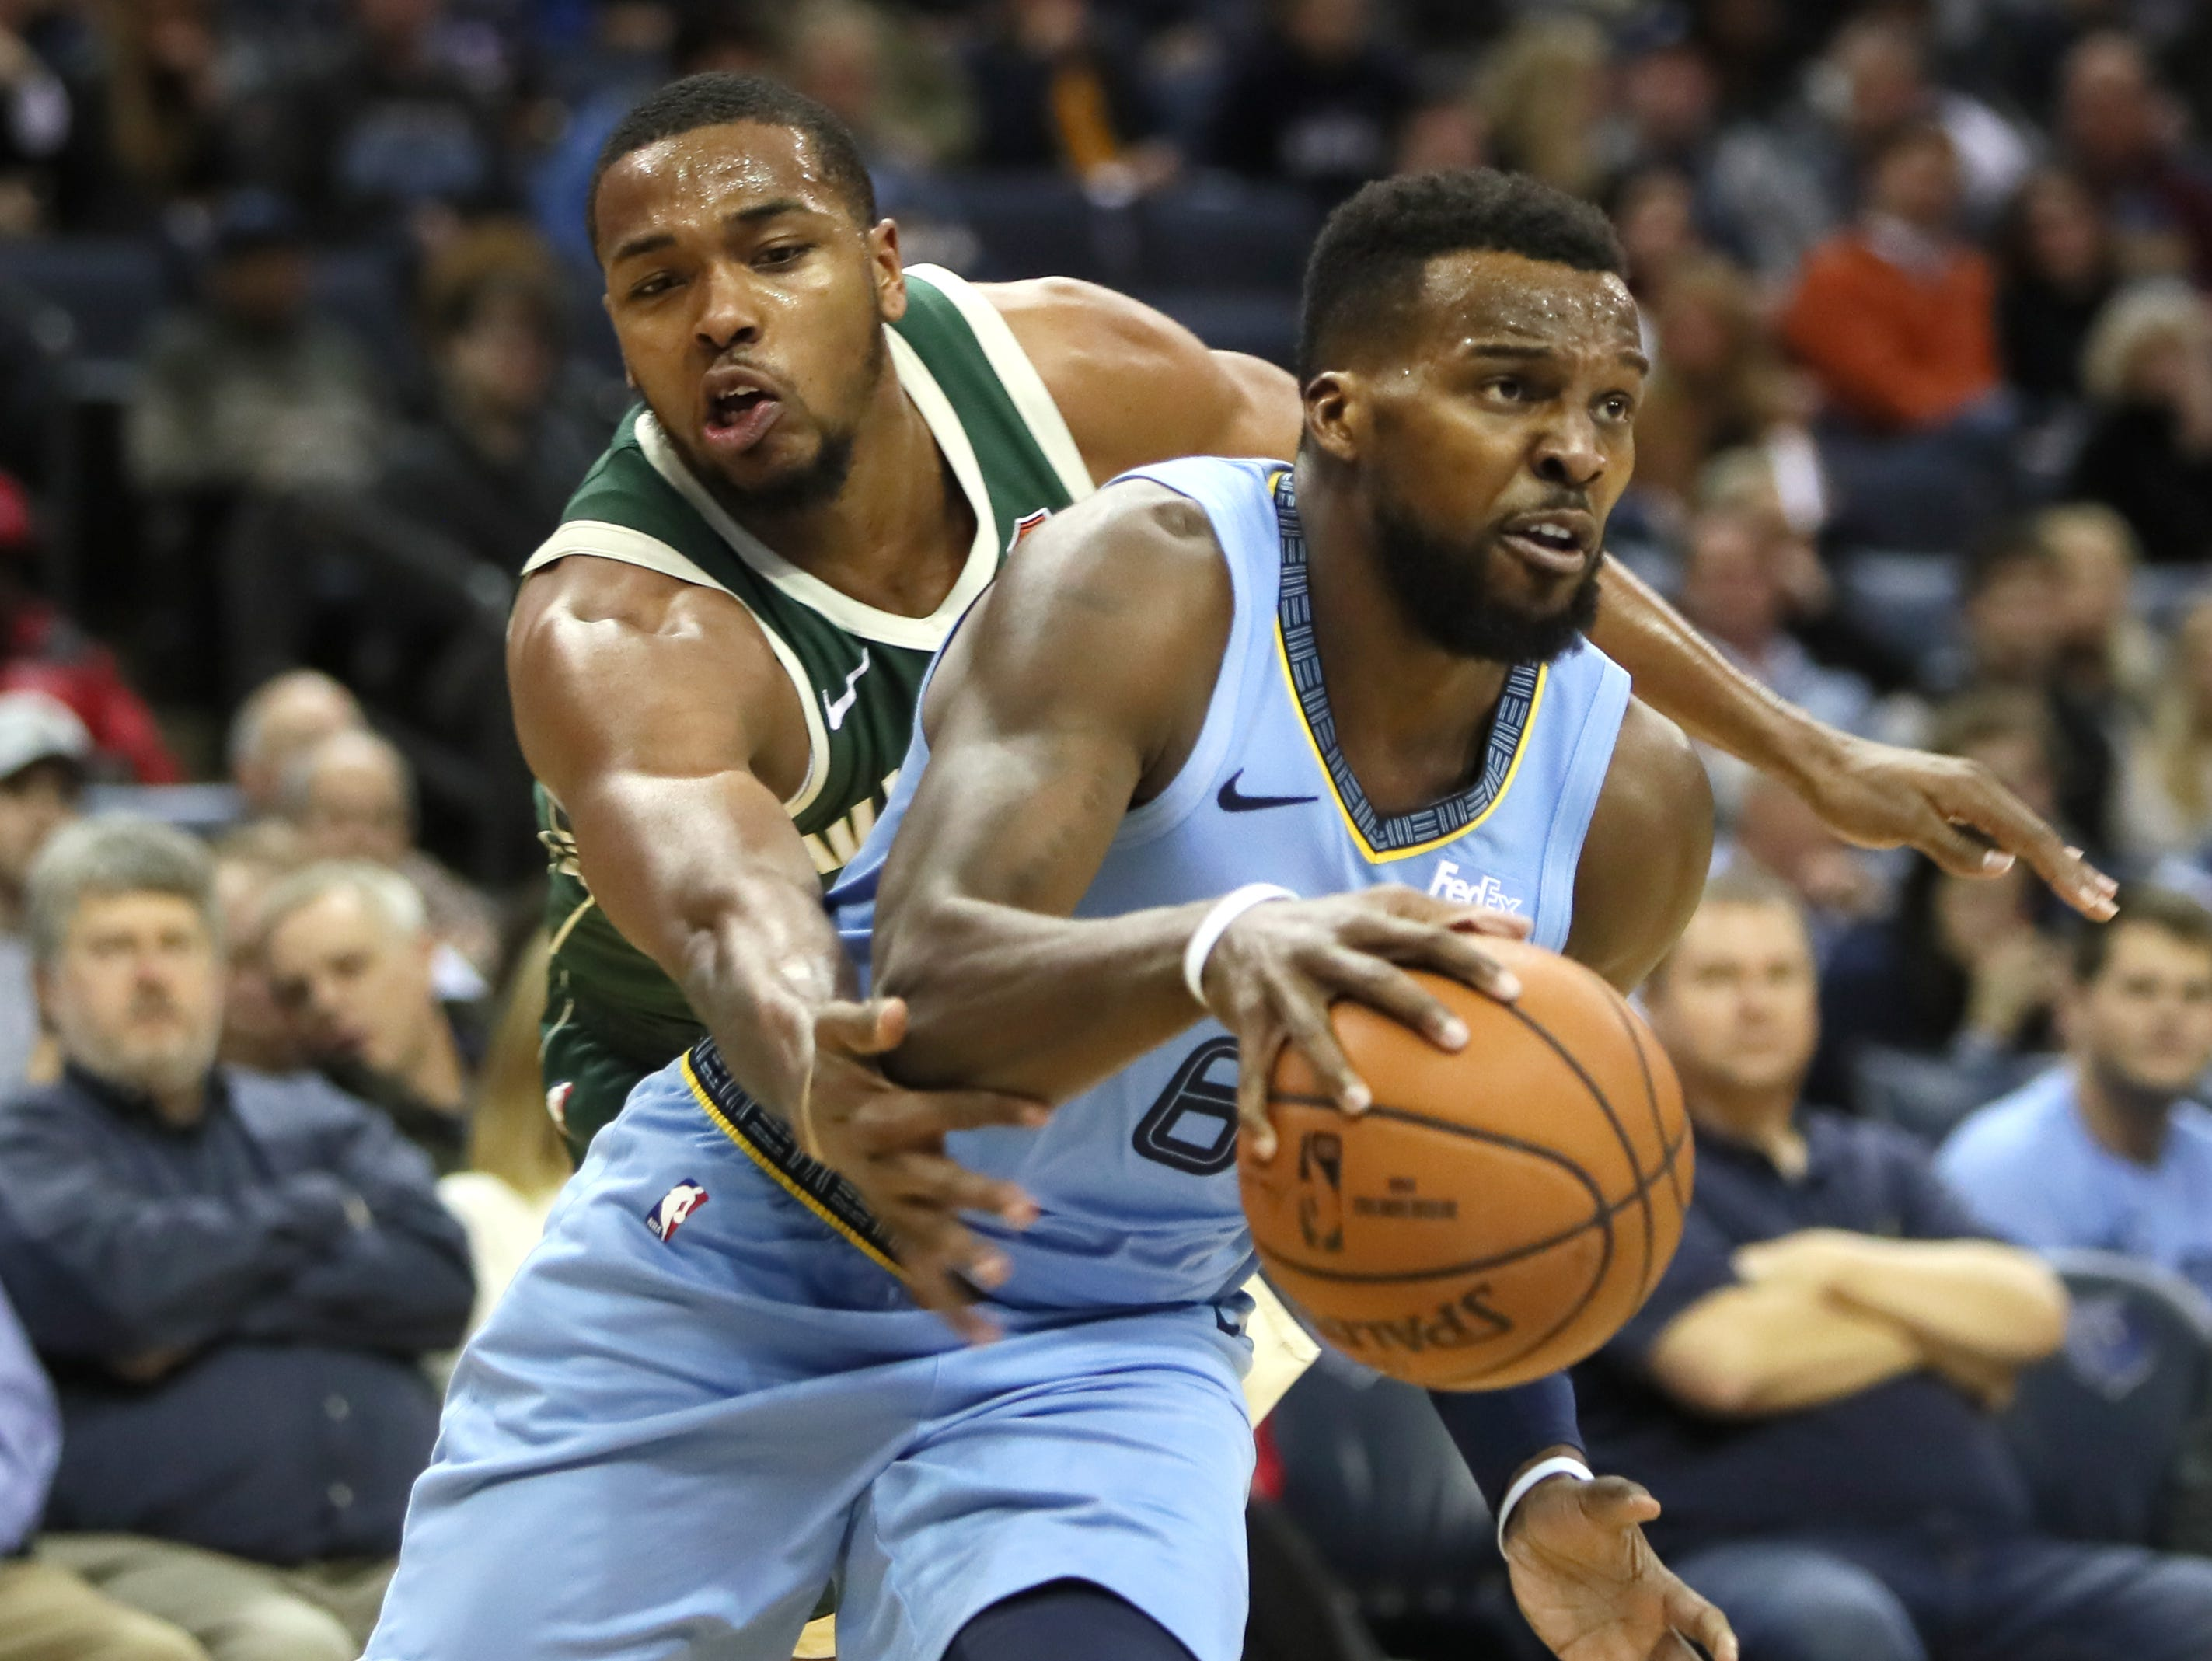 Memphis Grizzlies guard Shelvin Mack drives past the defense of Milwaukee Bucks guard Sterling Brown during their game at the FedExForum on Wednesday, Jan. 16, 2019.